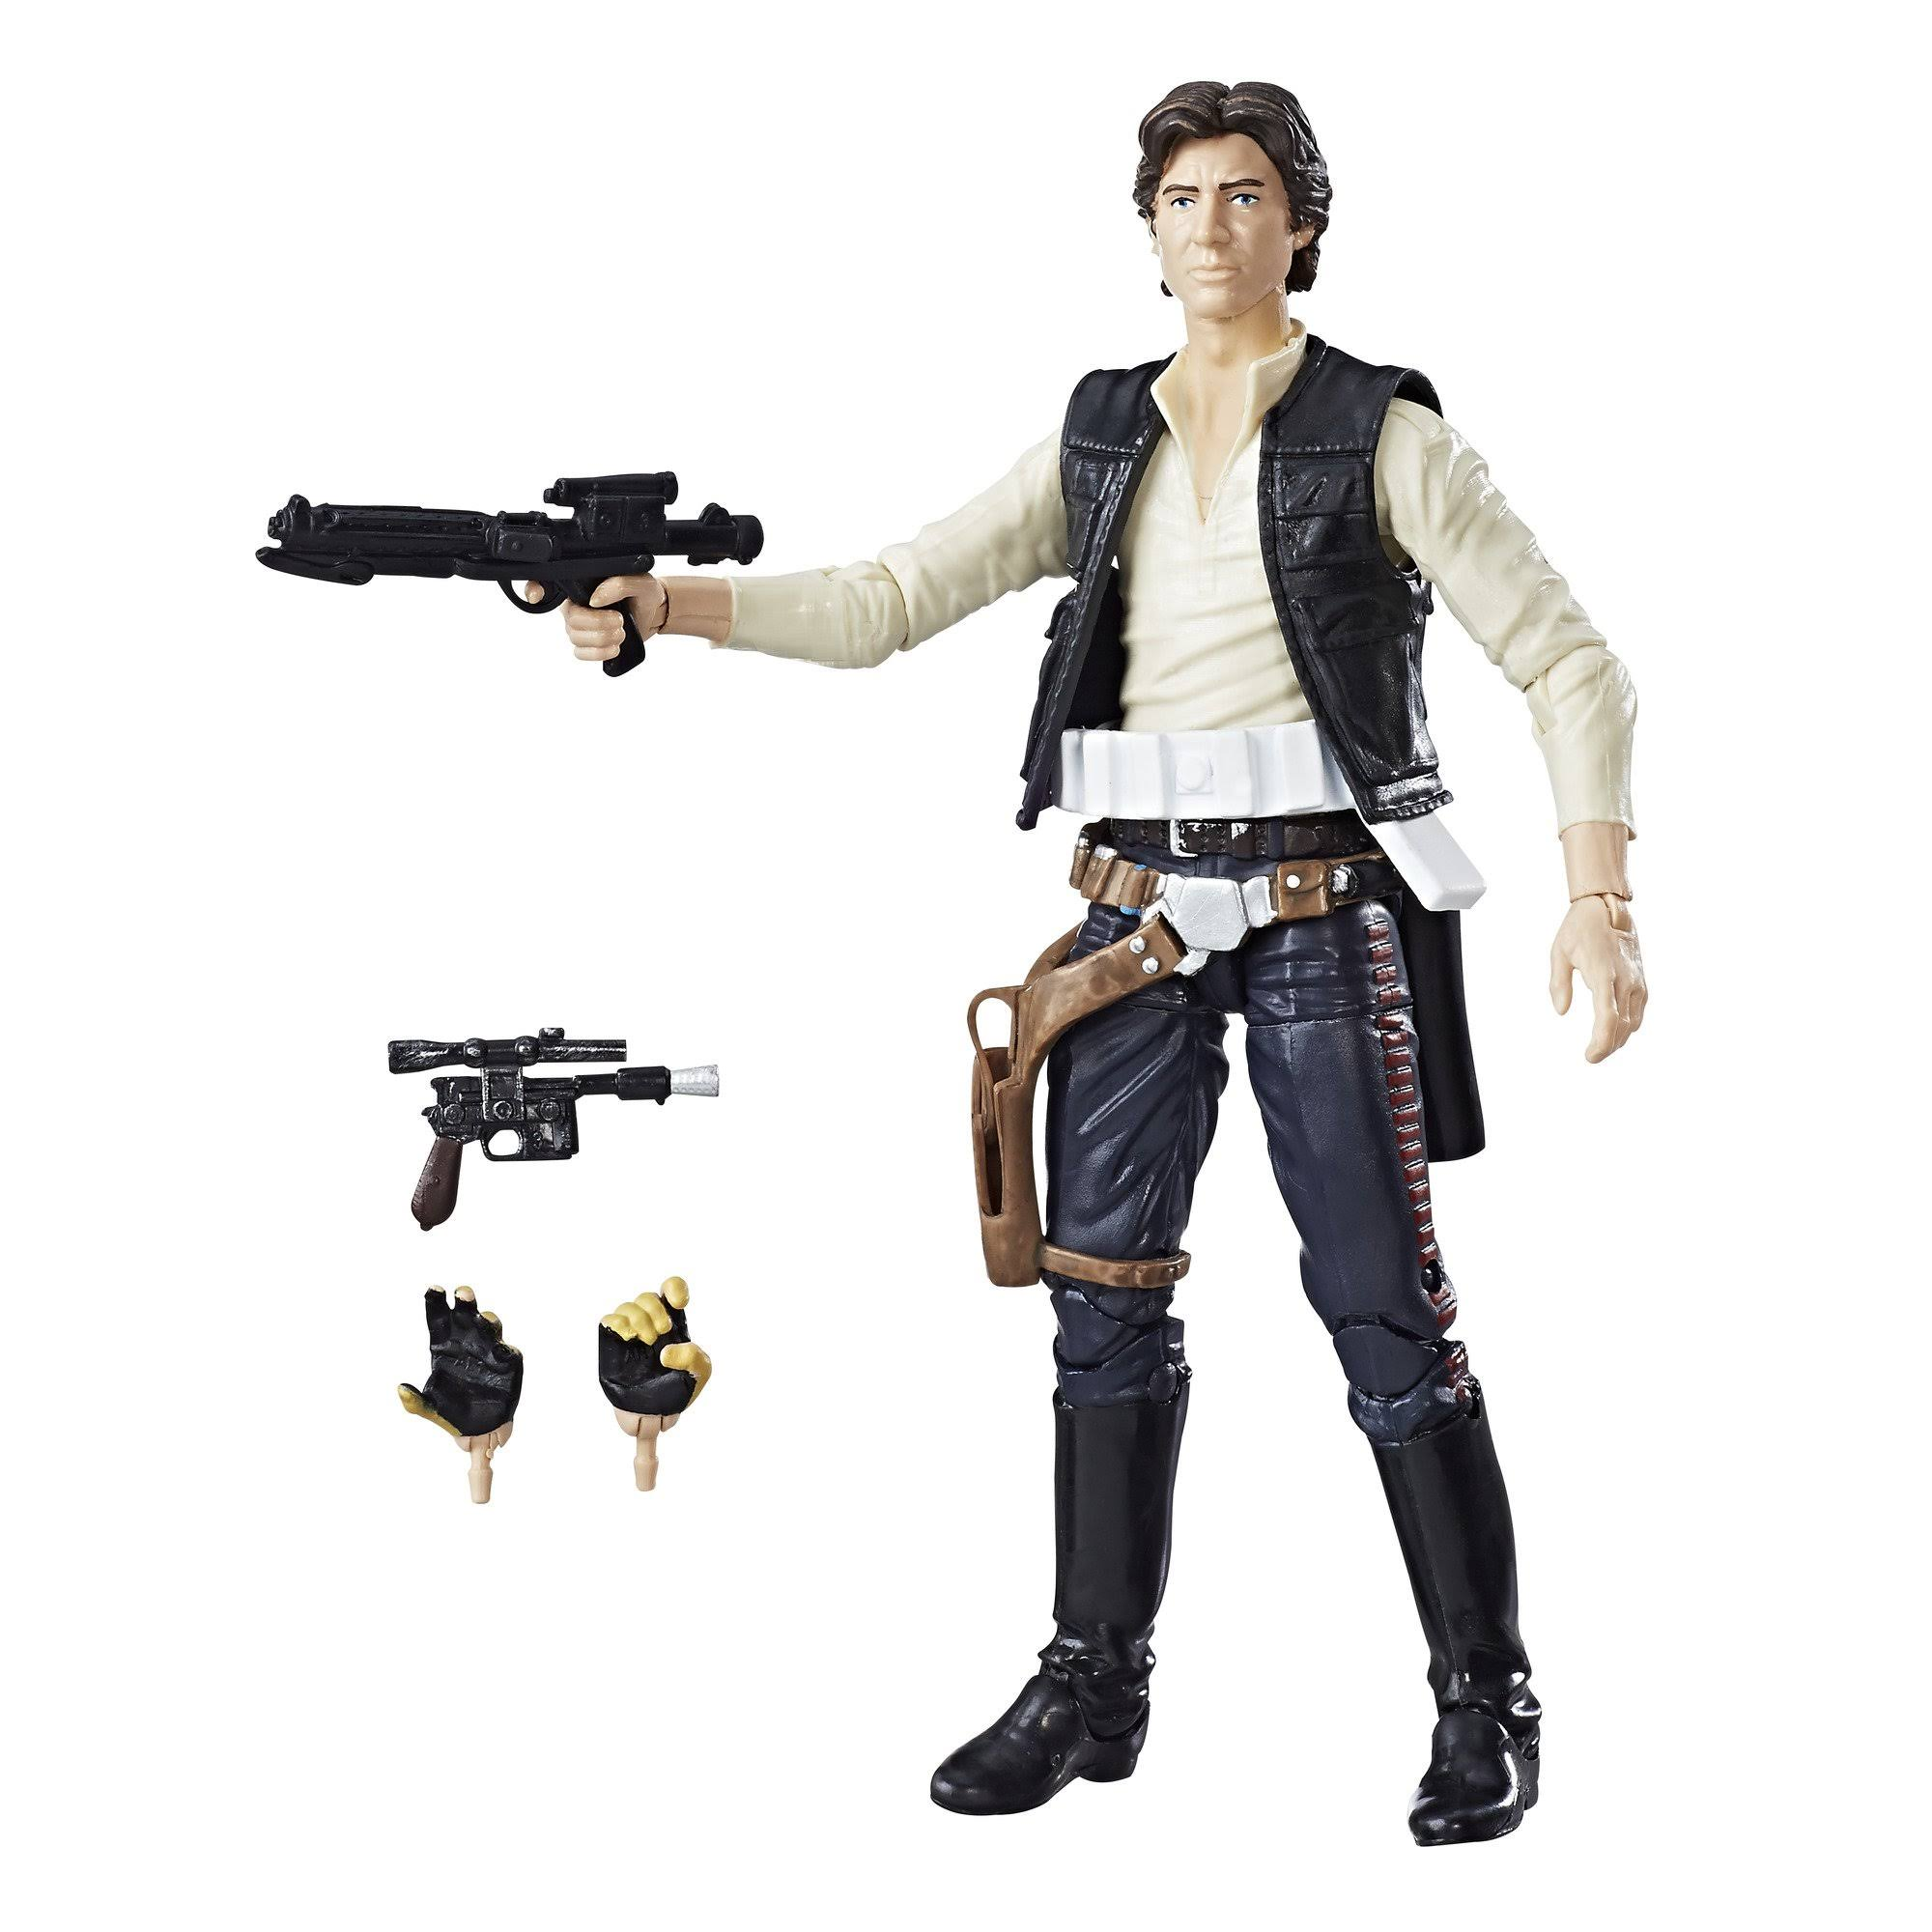 Star Wars The Black Series 40th Anniversary Figure - Han Solo, 6""